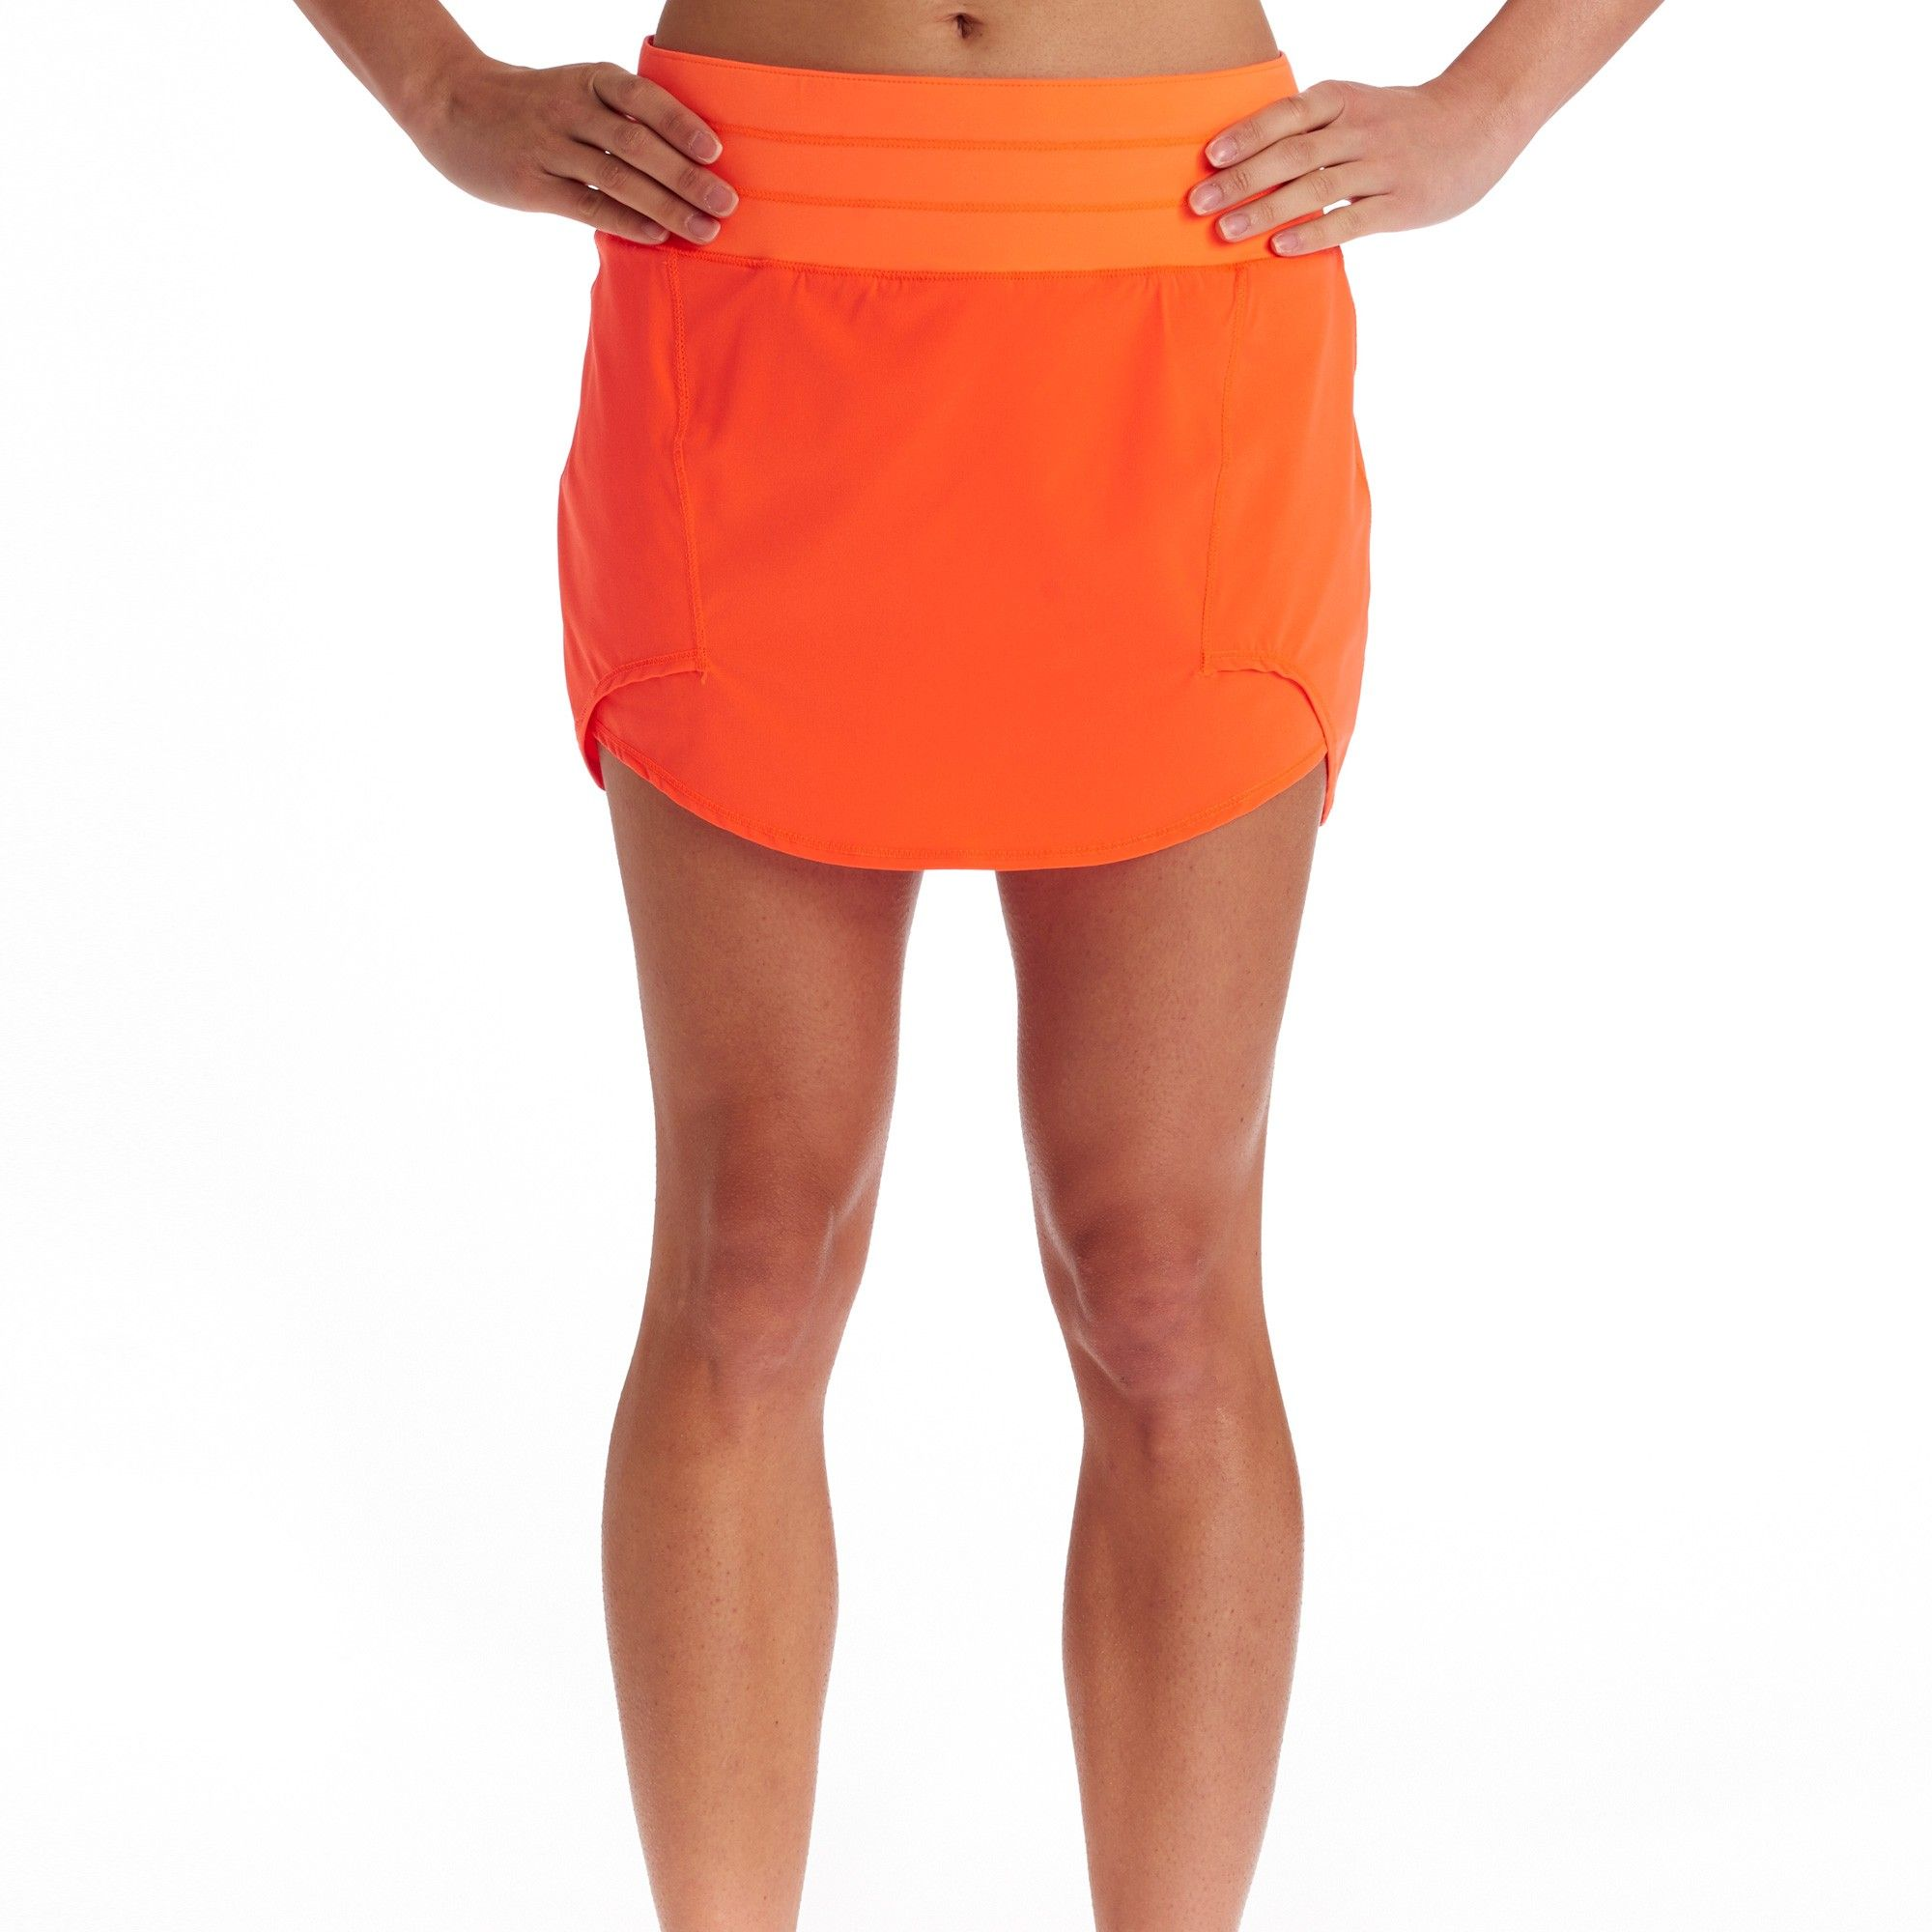 Roga skirt with briefs | Running Clothes | Running skirts